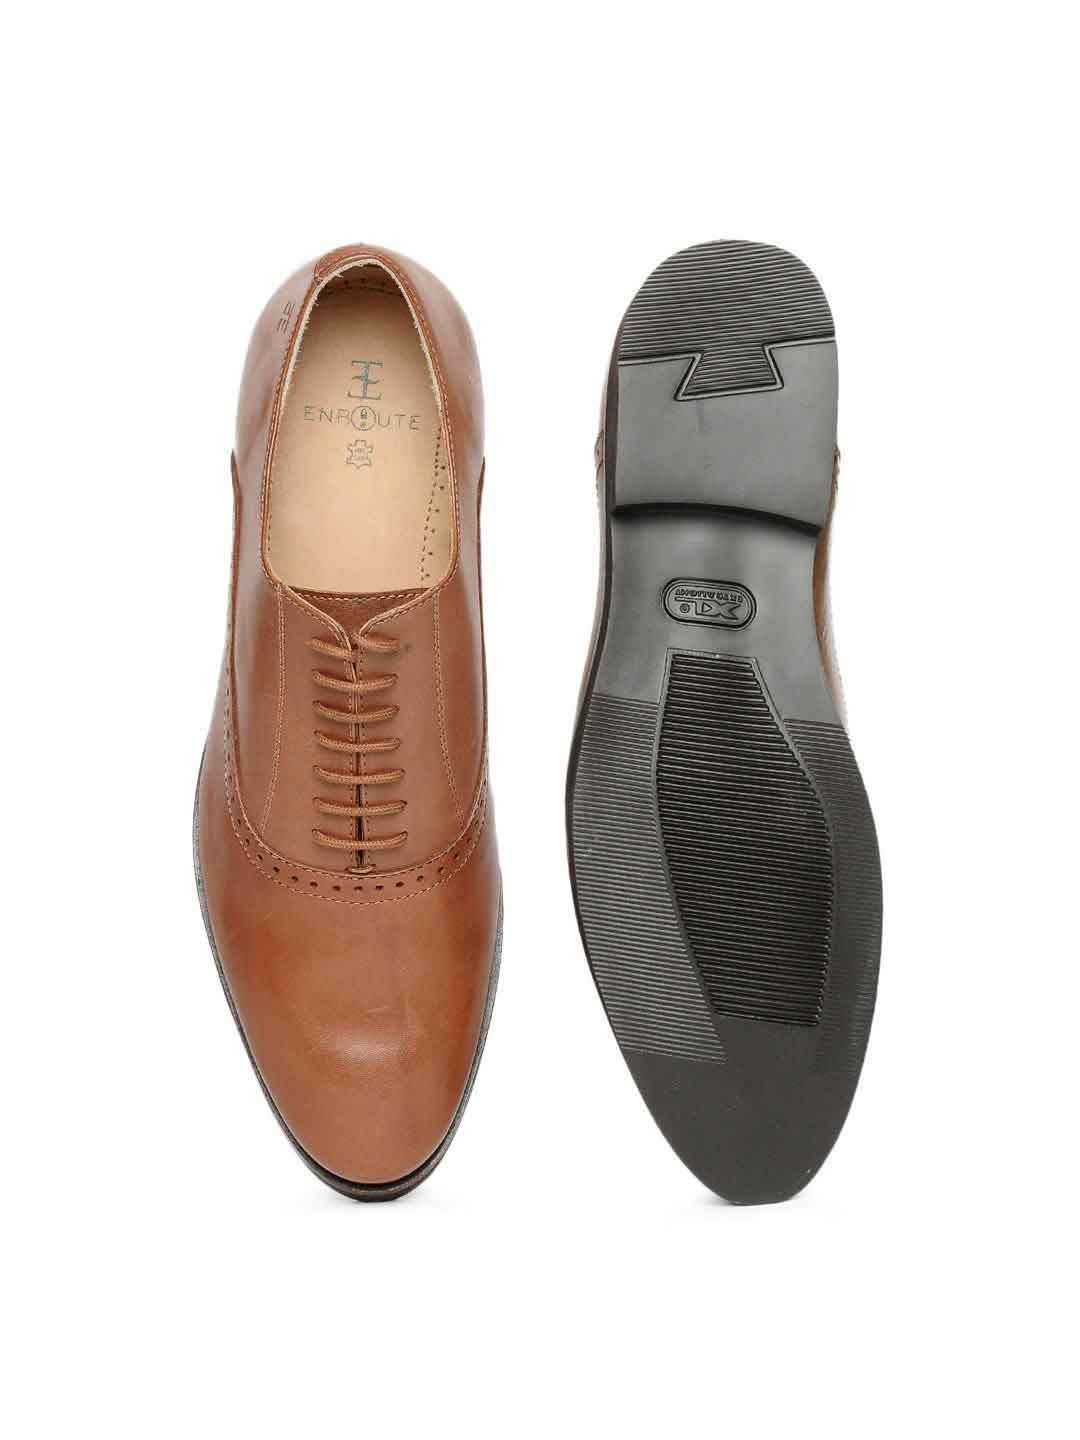 Latest shoes for men 2013